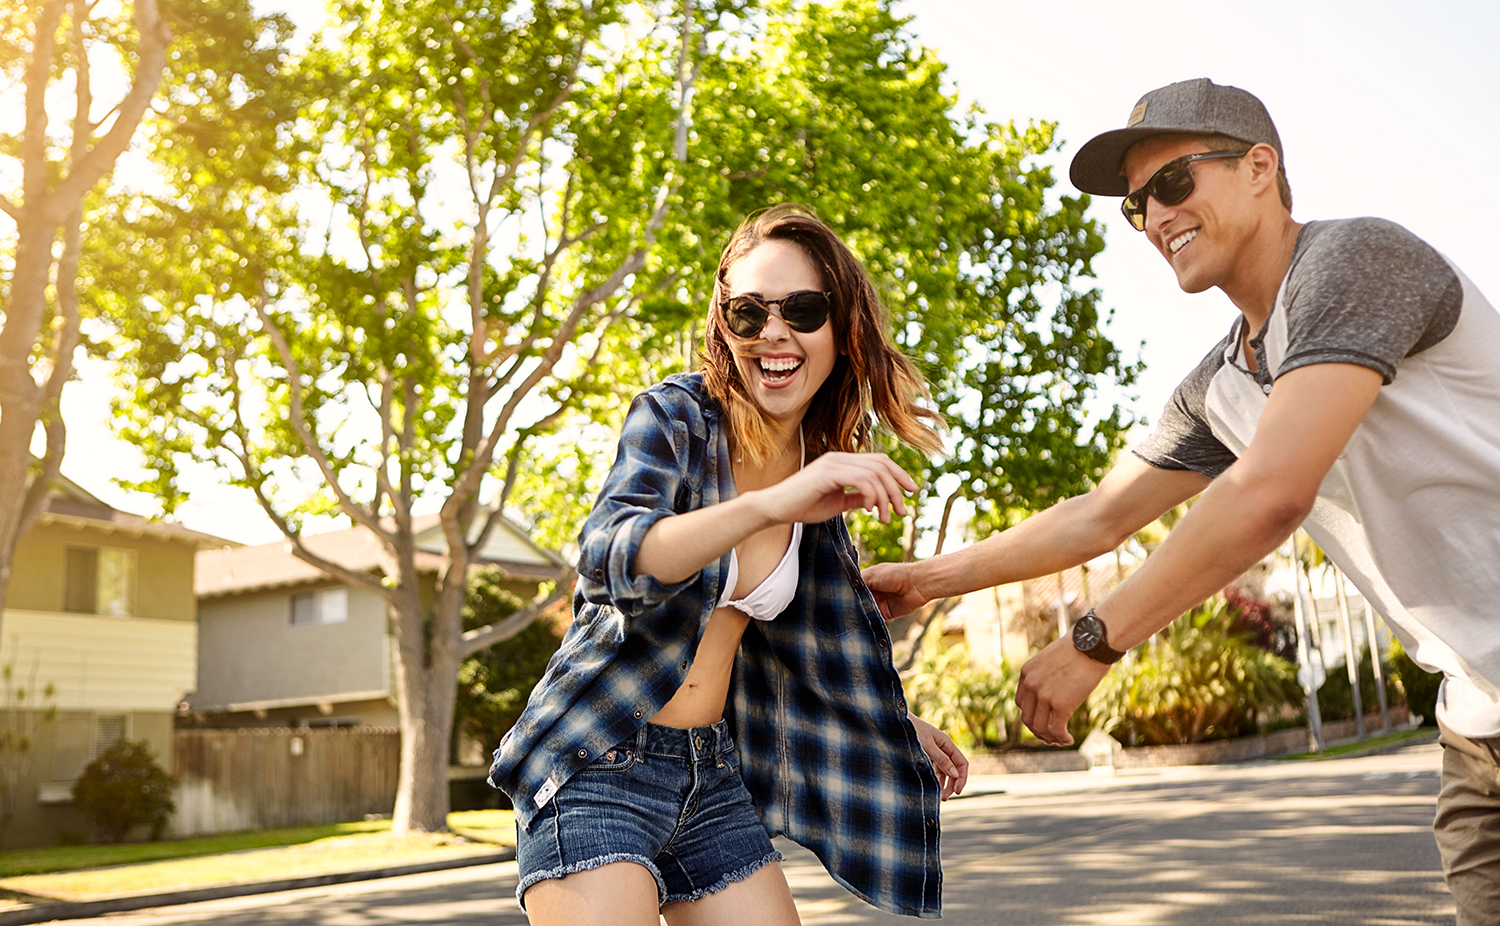 lifestyle guy and girl flurting playing on skateboard in street.jpg